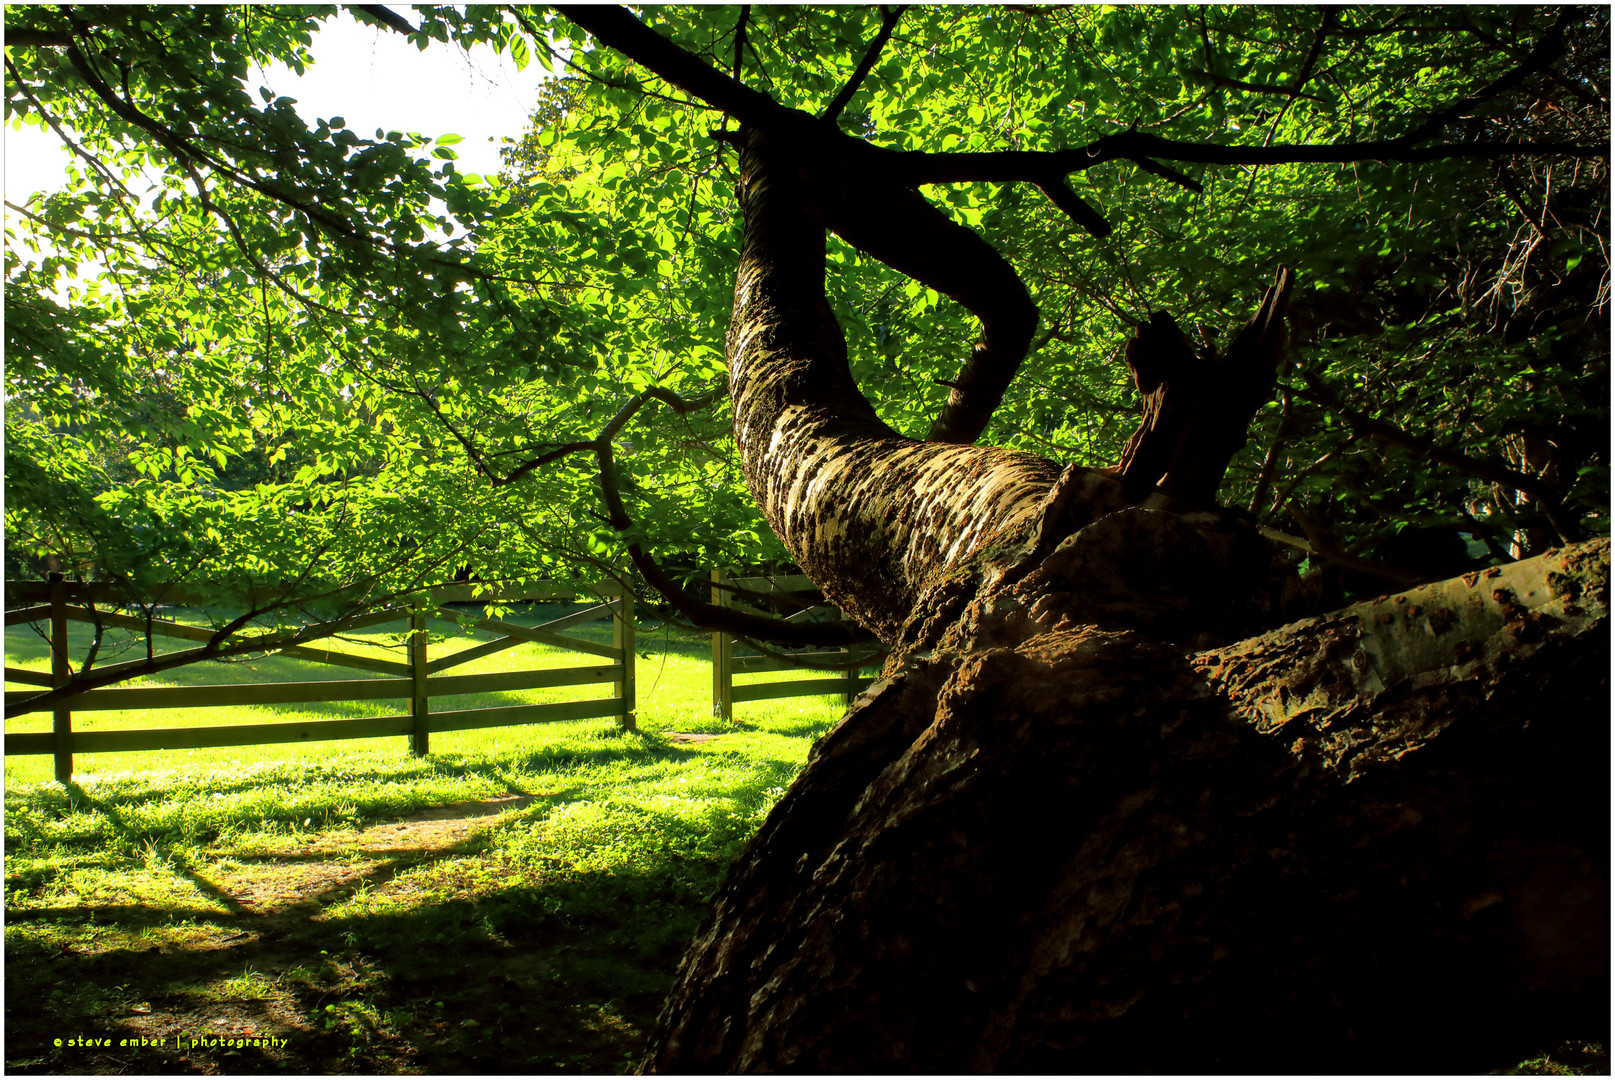 Gnarled Tree and Rustic Fence in Golden Hour